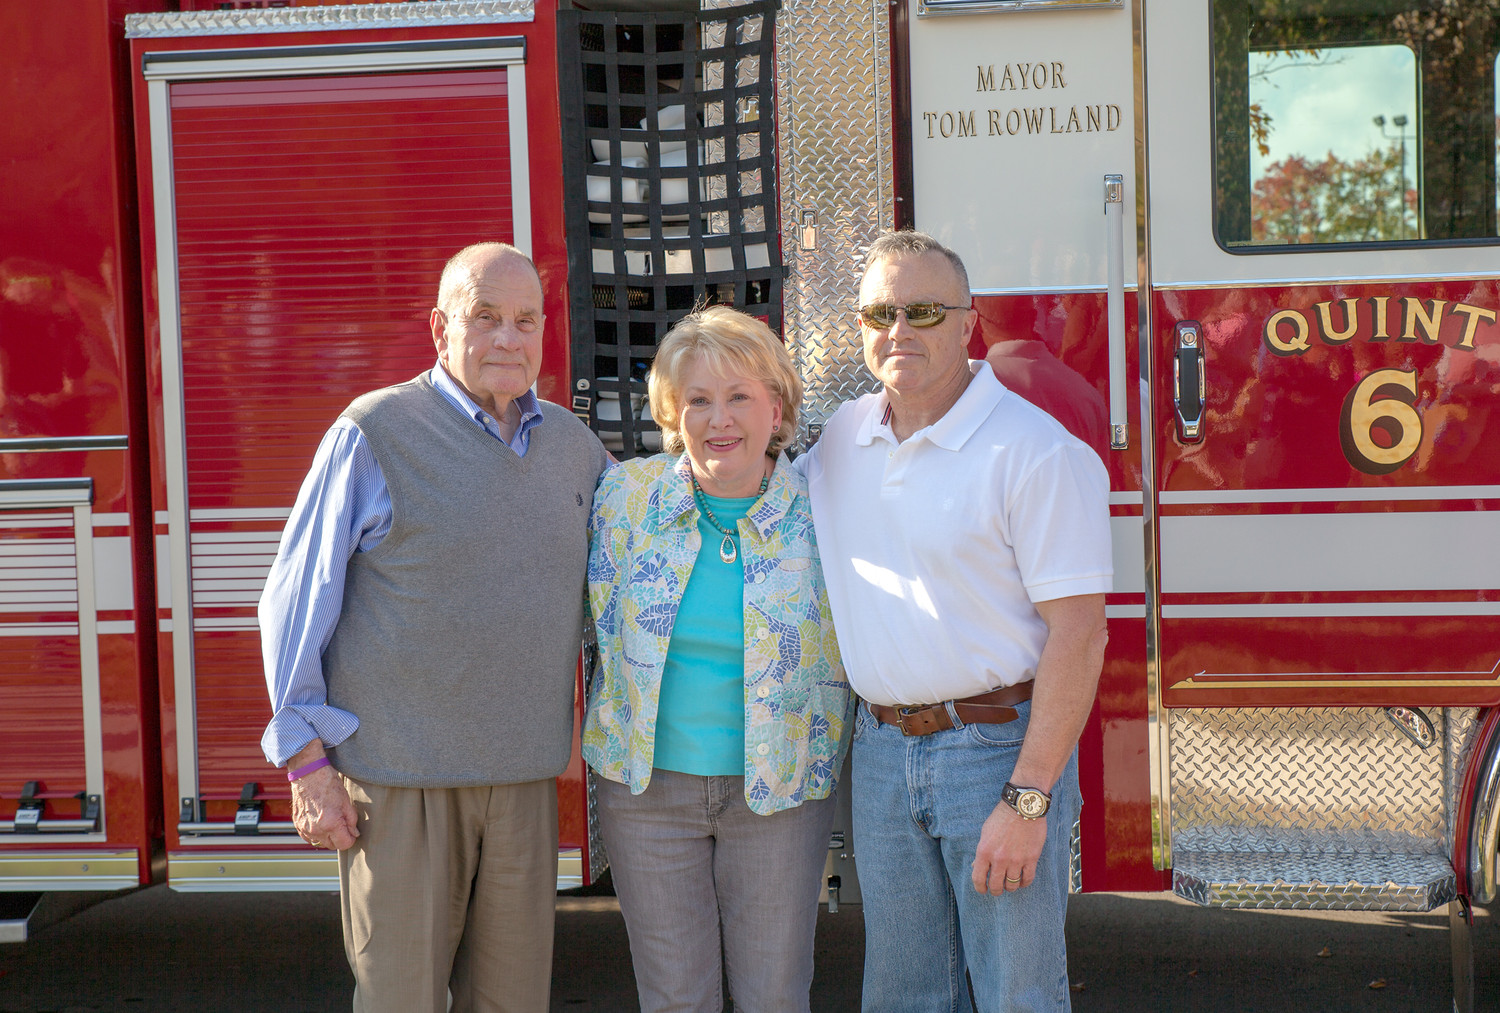 MAYOR TOM ROWLAND, left, and his wife, Sandra, were pleasantly surprised when Cleveland Fire Department Chief Ron Harrison, right, made the surprise announcement that the latest addition to the fleet of trucks servicing the Cleveland area was named after the mayor.